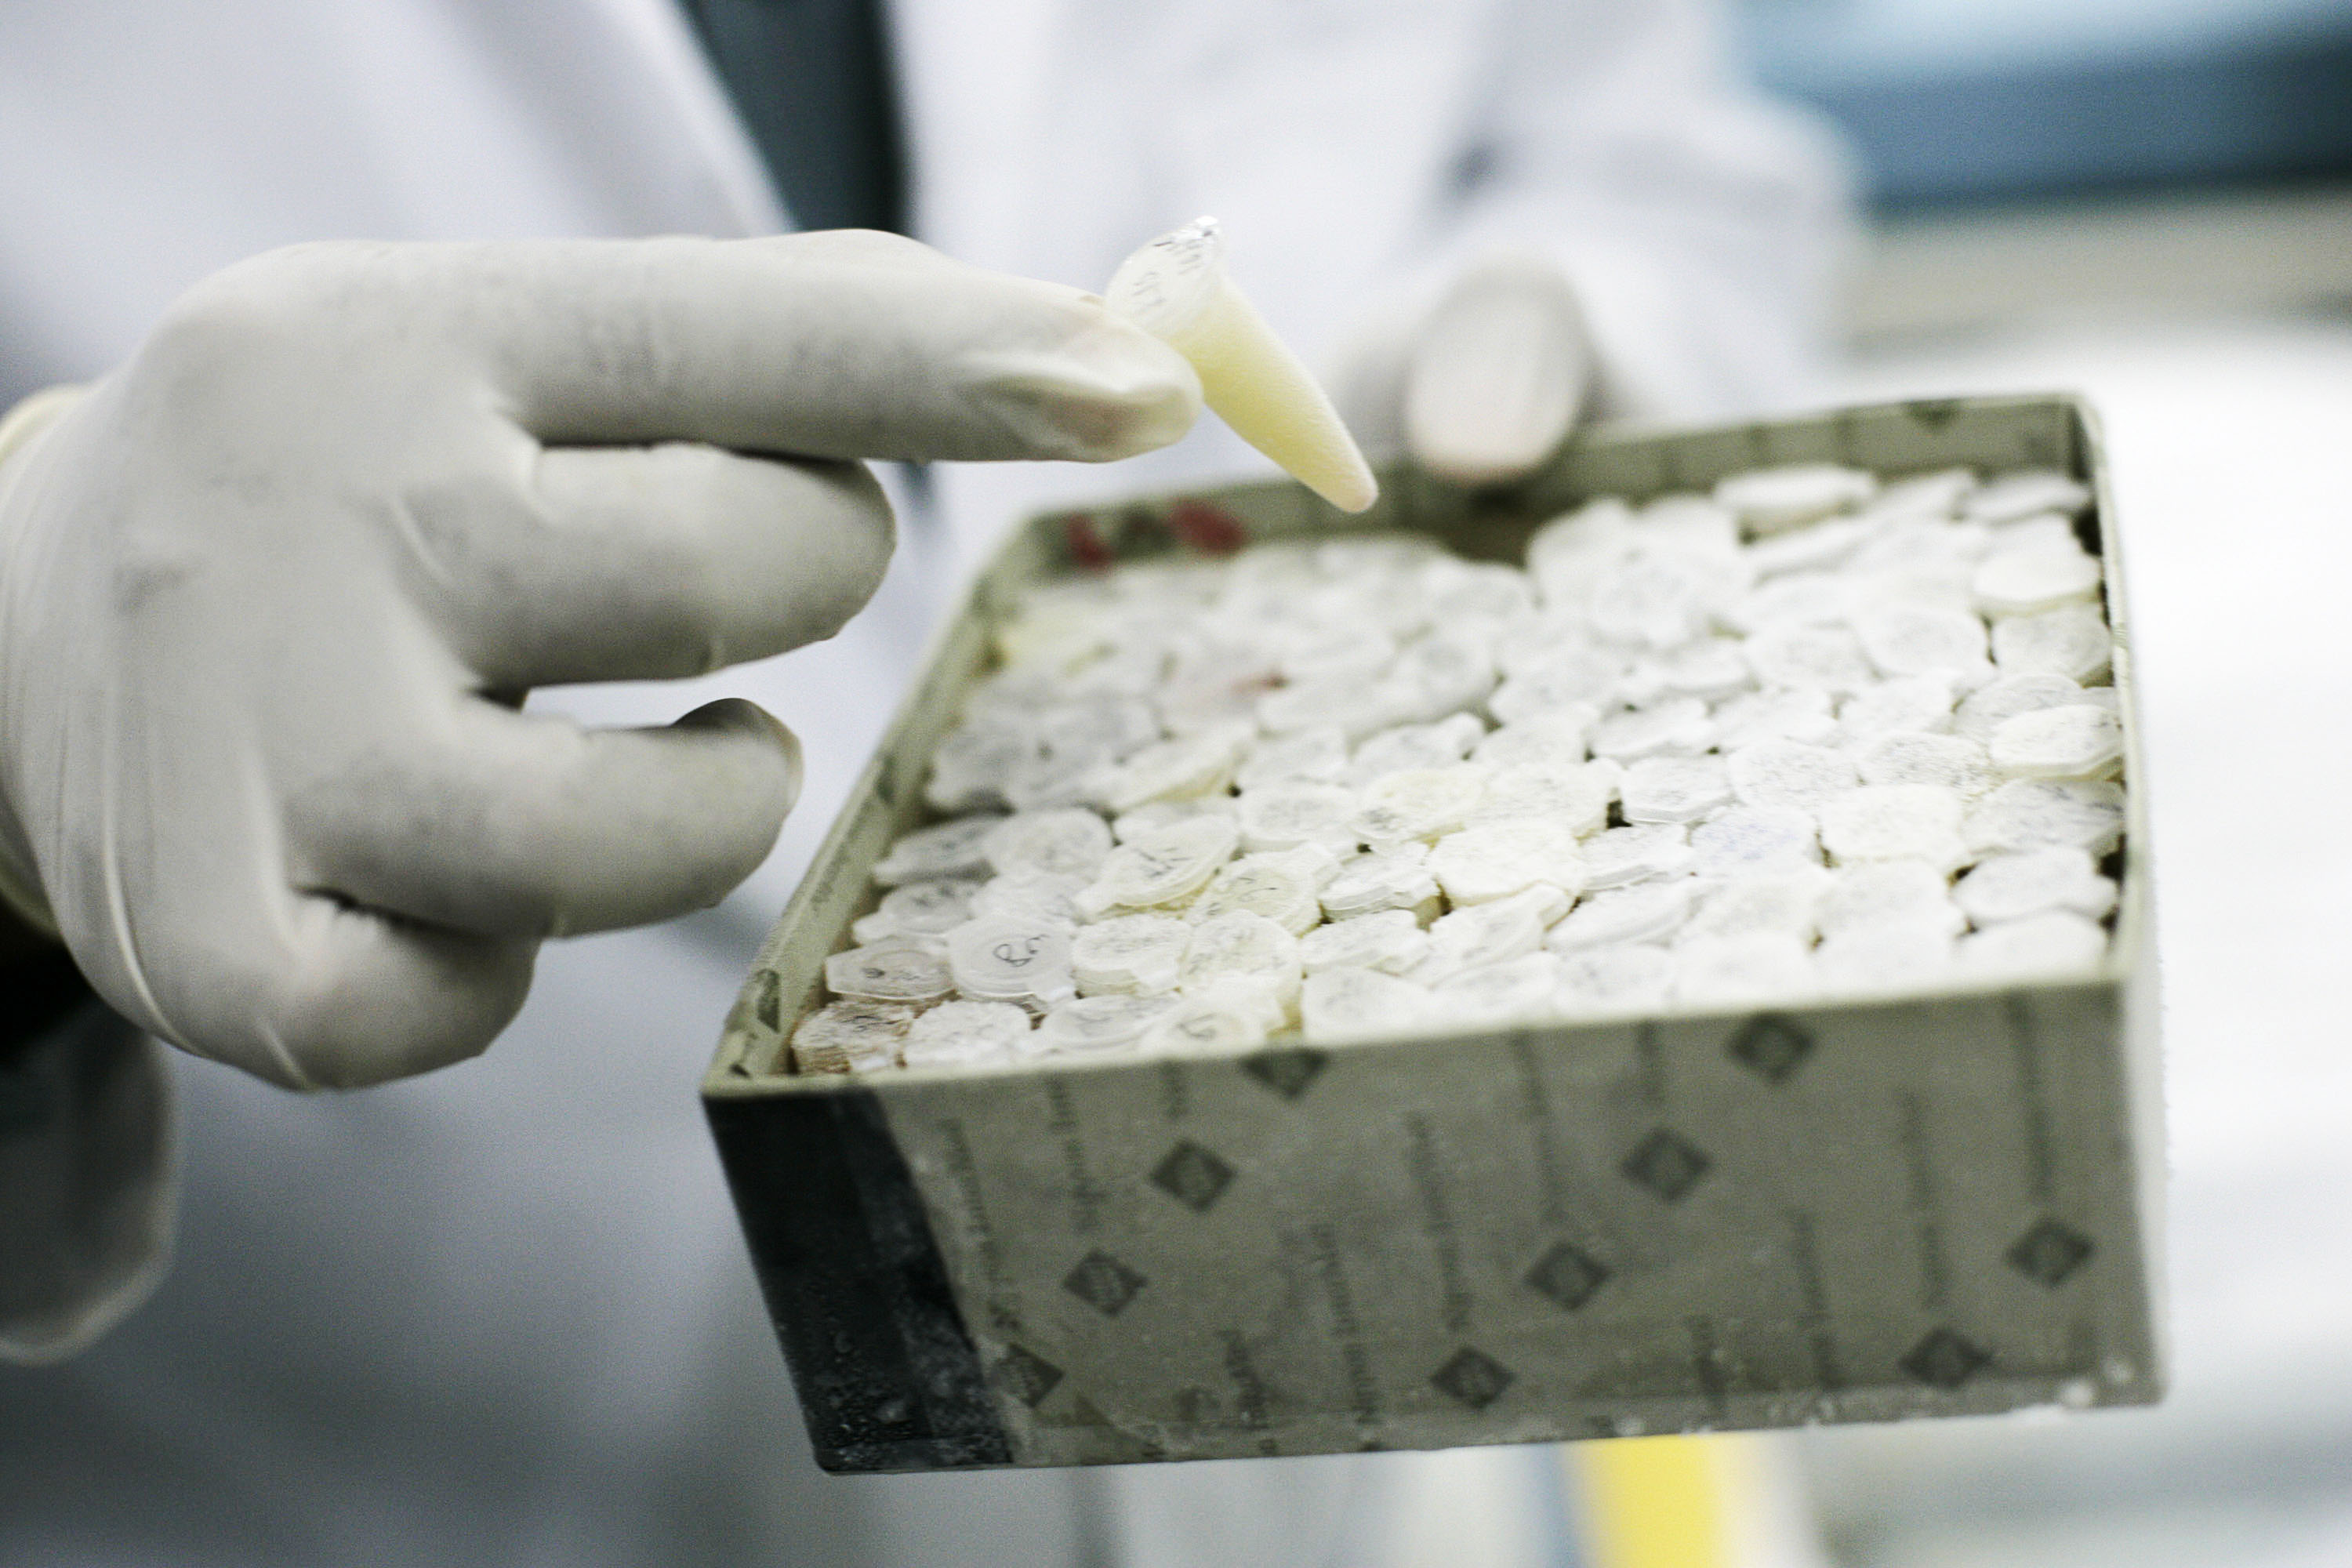 Biologists are trying to make bird flu easier to spread. Can we not?